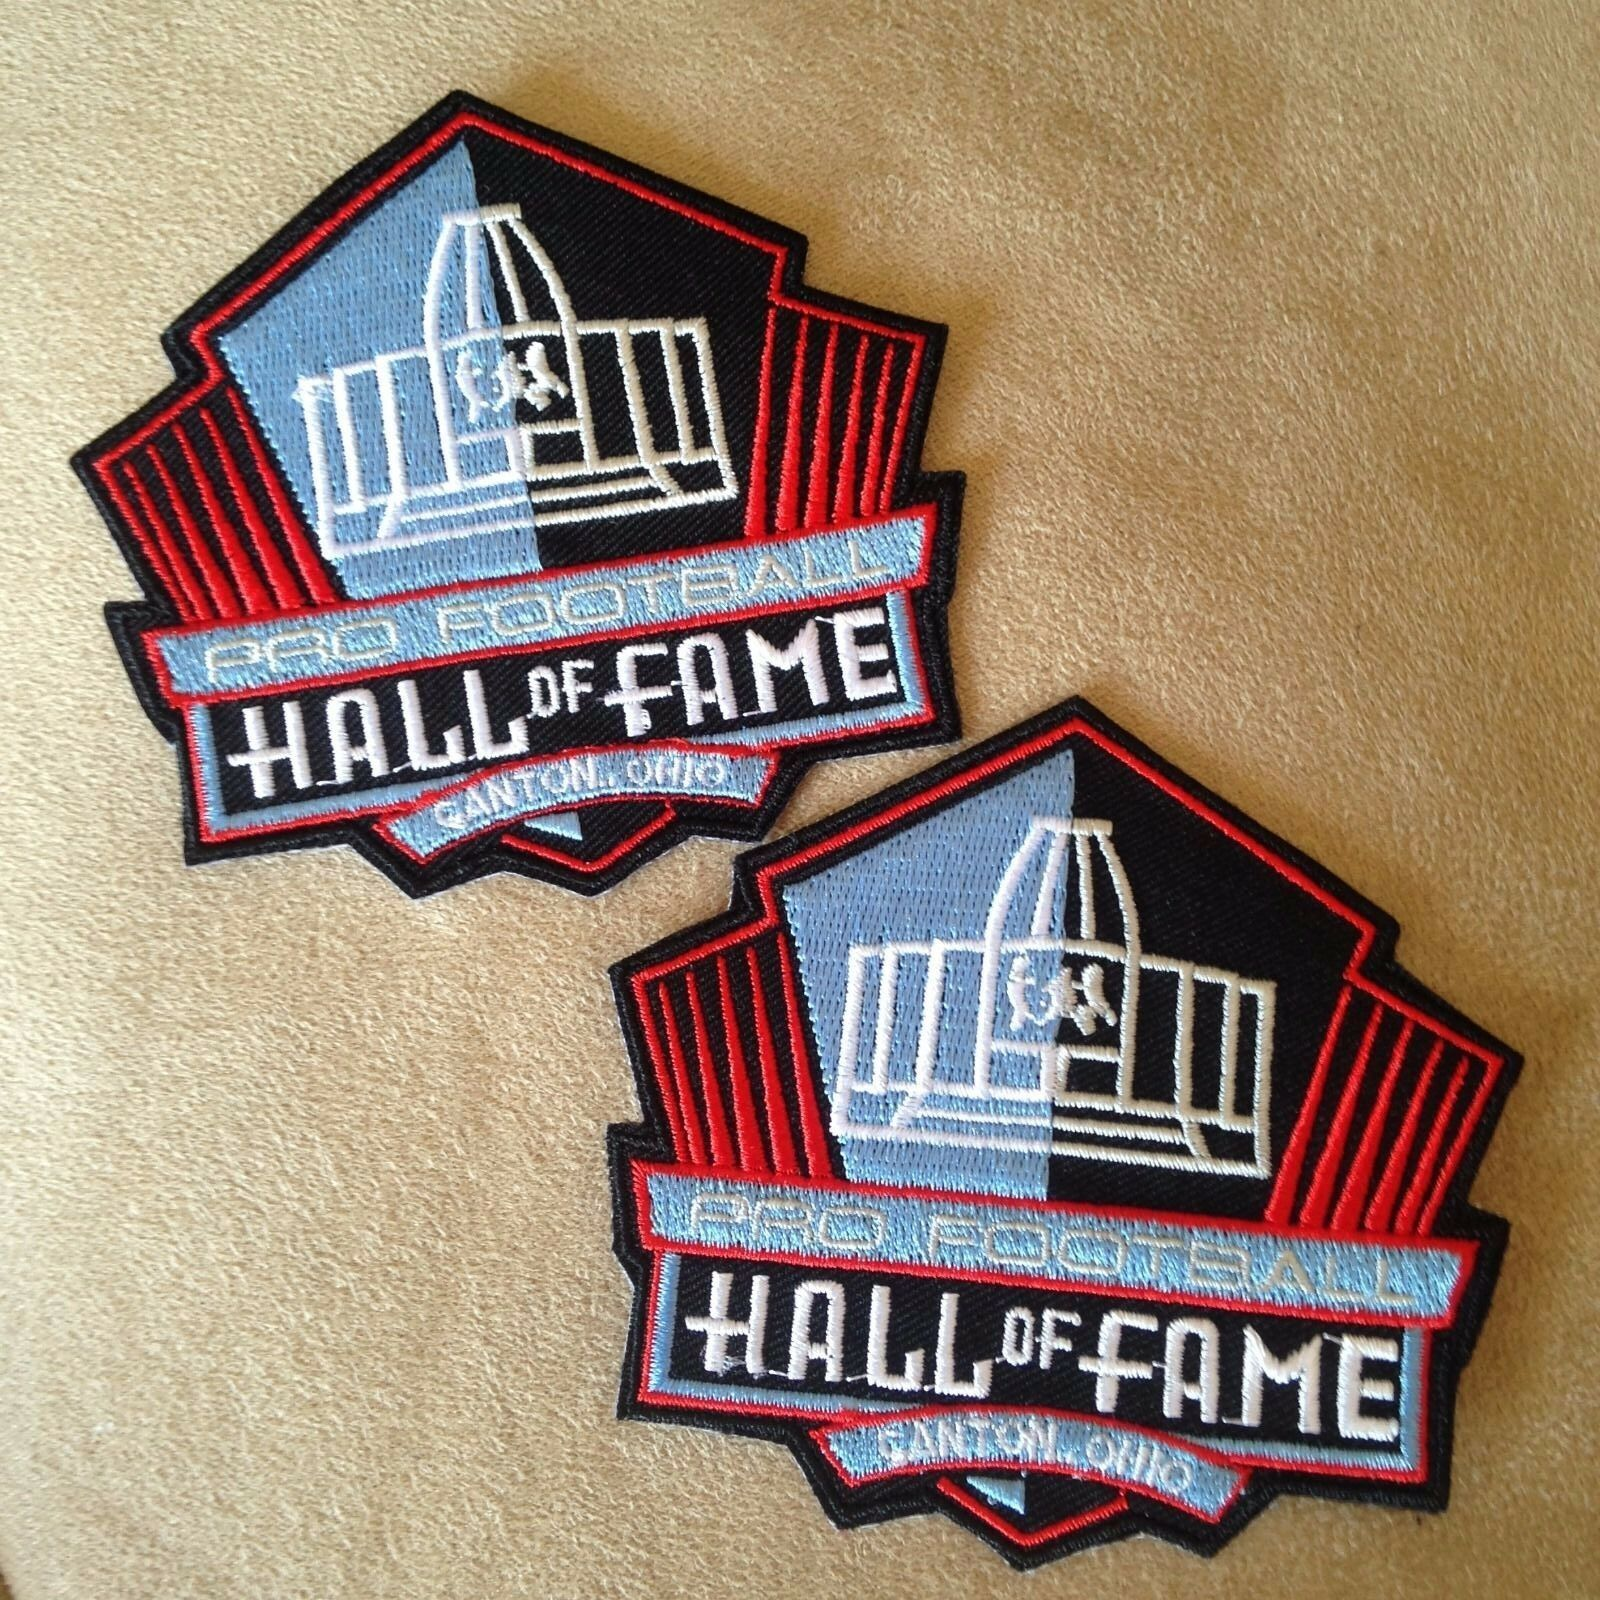 separation shoes 90dd8 e71a0 2 - NFL Pro Football Hall of Fame Canton Ohio Logo Iron-on Jersey/jacket  Patches